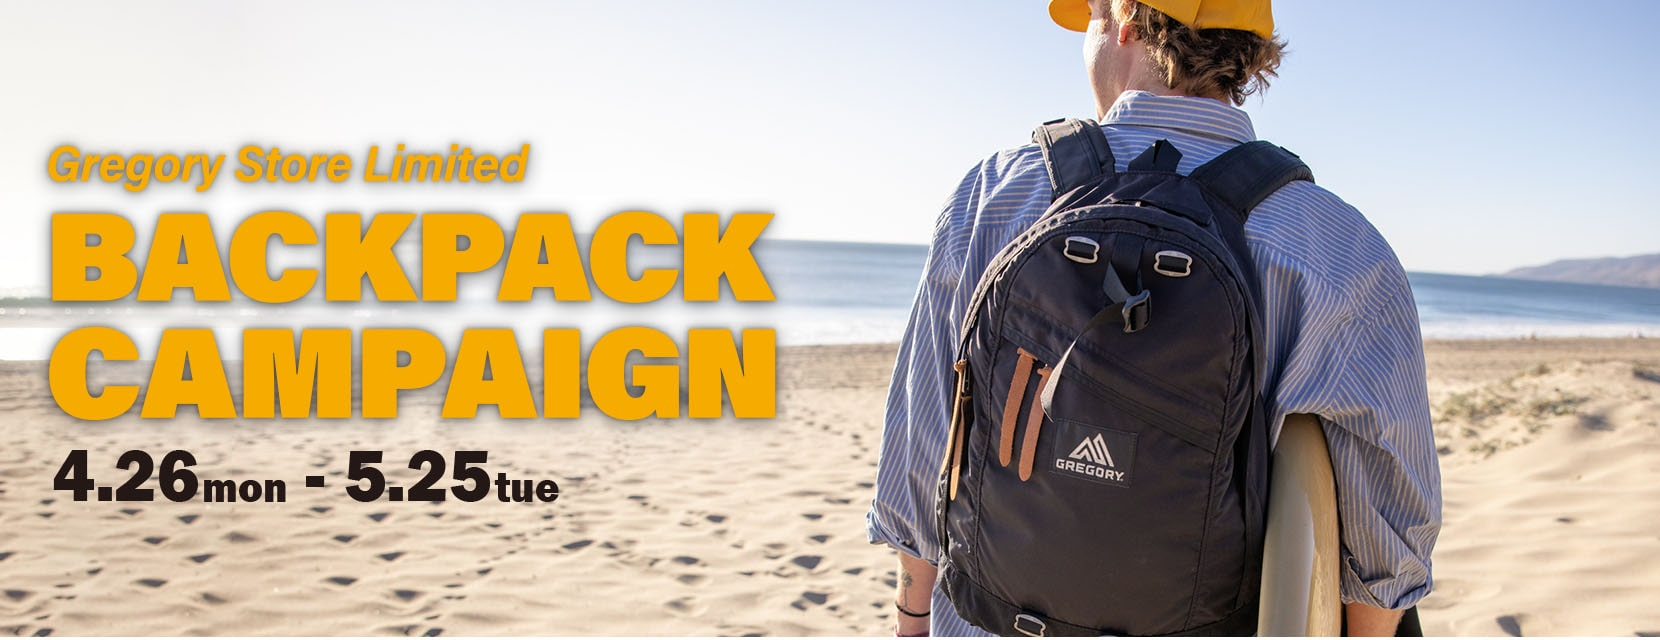 BACKPACK CAMPAIGN